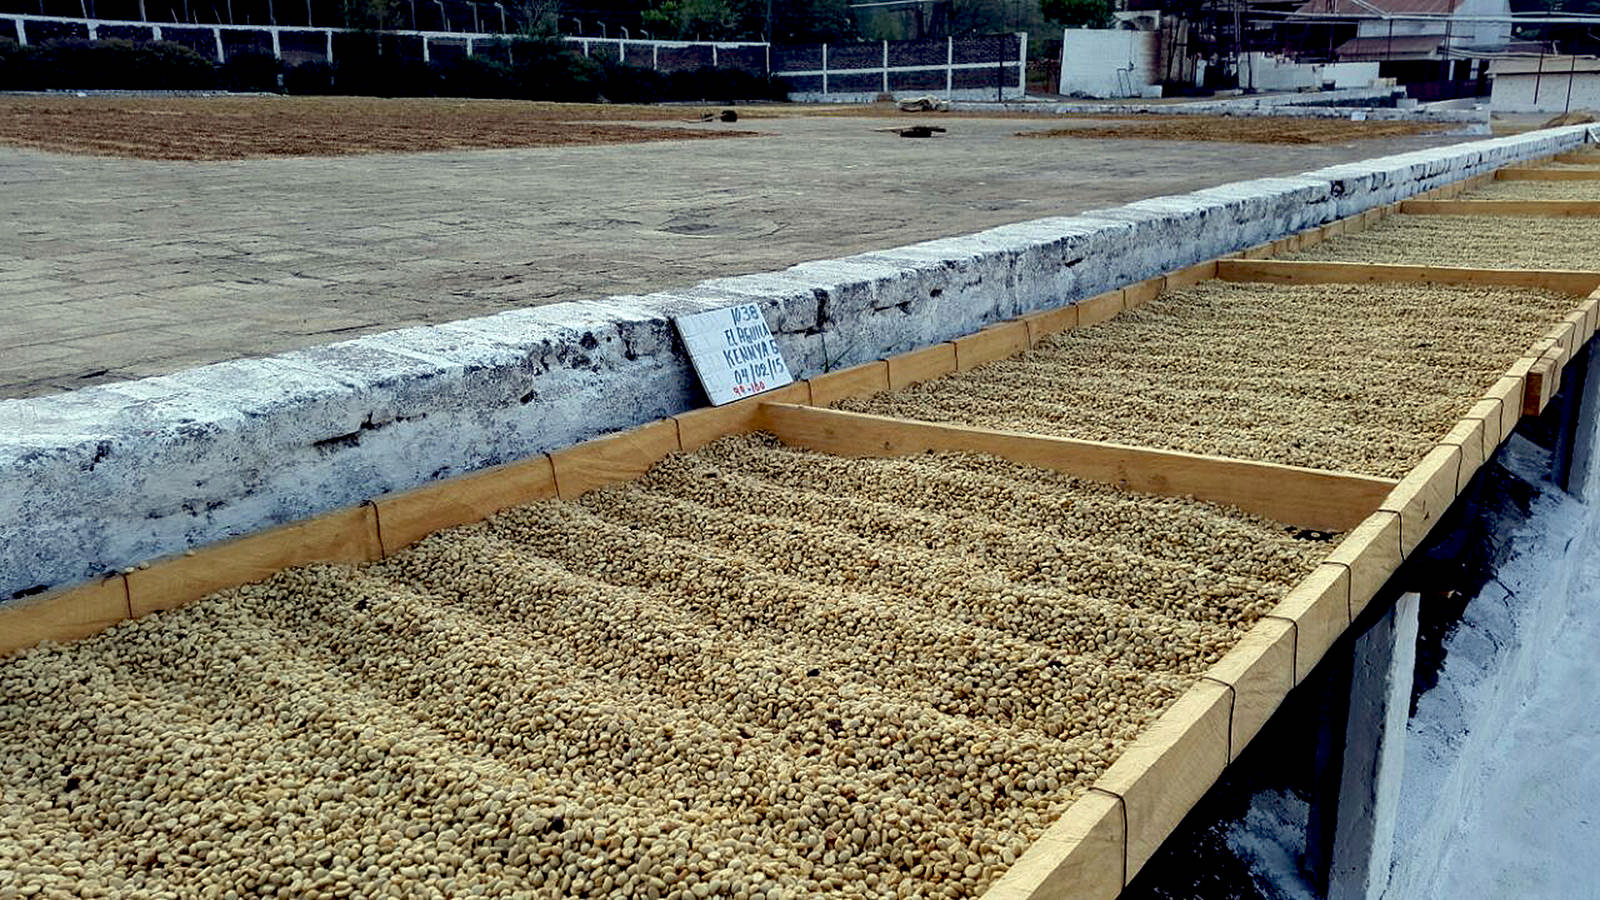 After the cherries get pulped and fermented, it gets washed and dried on patios in the sun for 16 days.